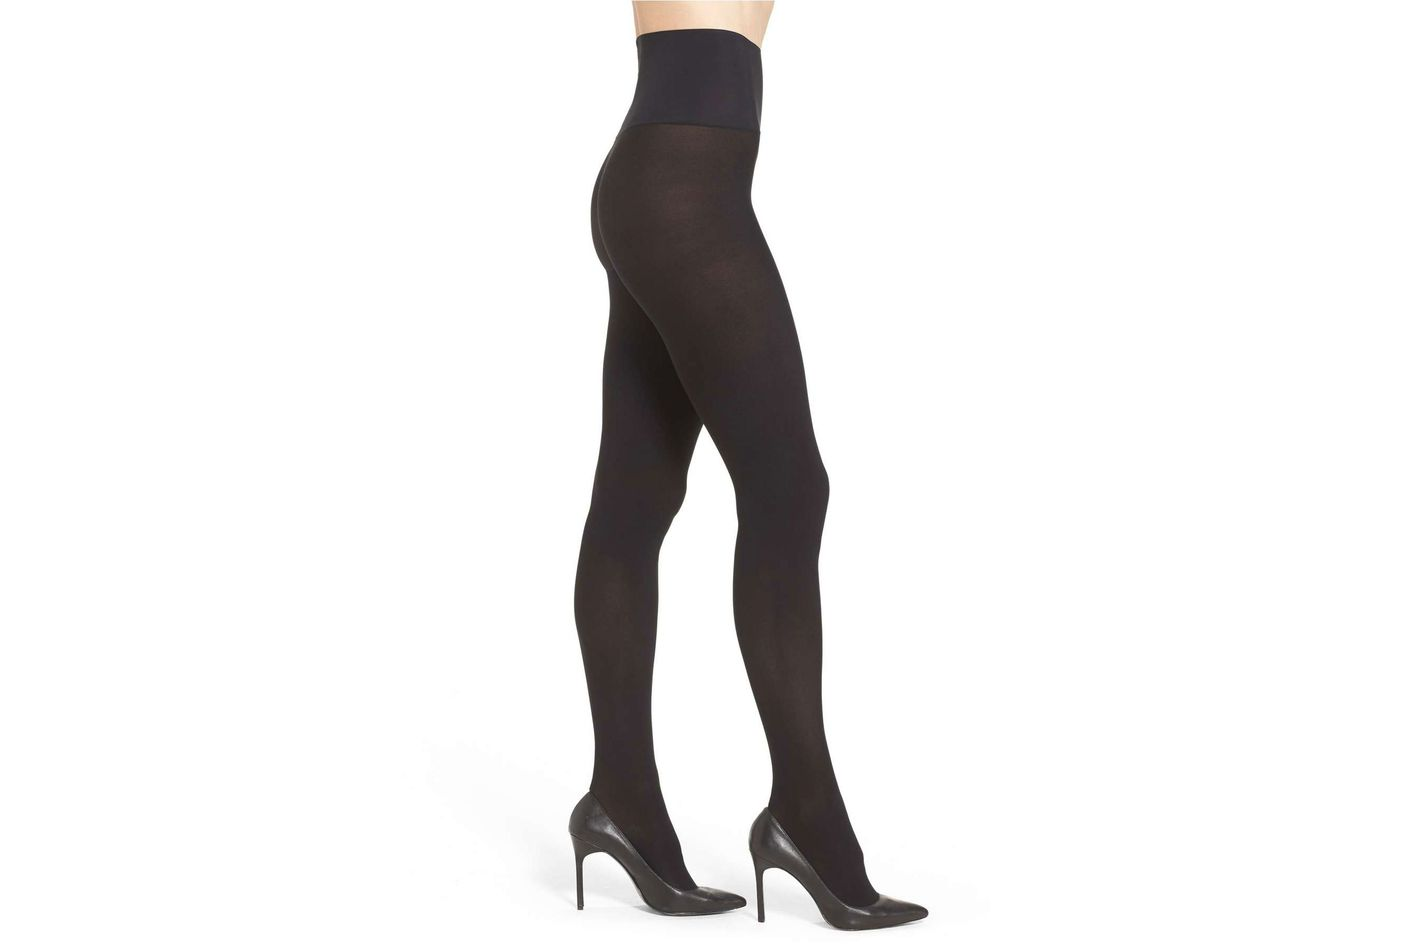 a77b45af4 8 Best Black Tights Women 2017  Opaque